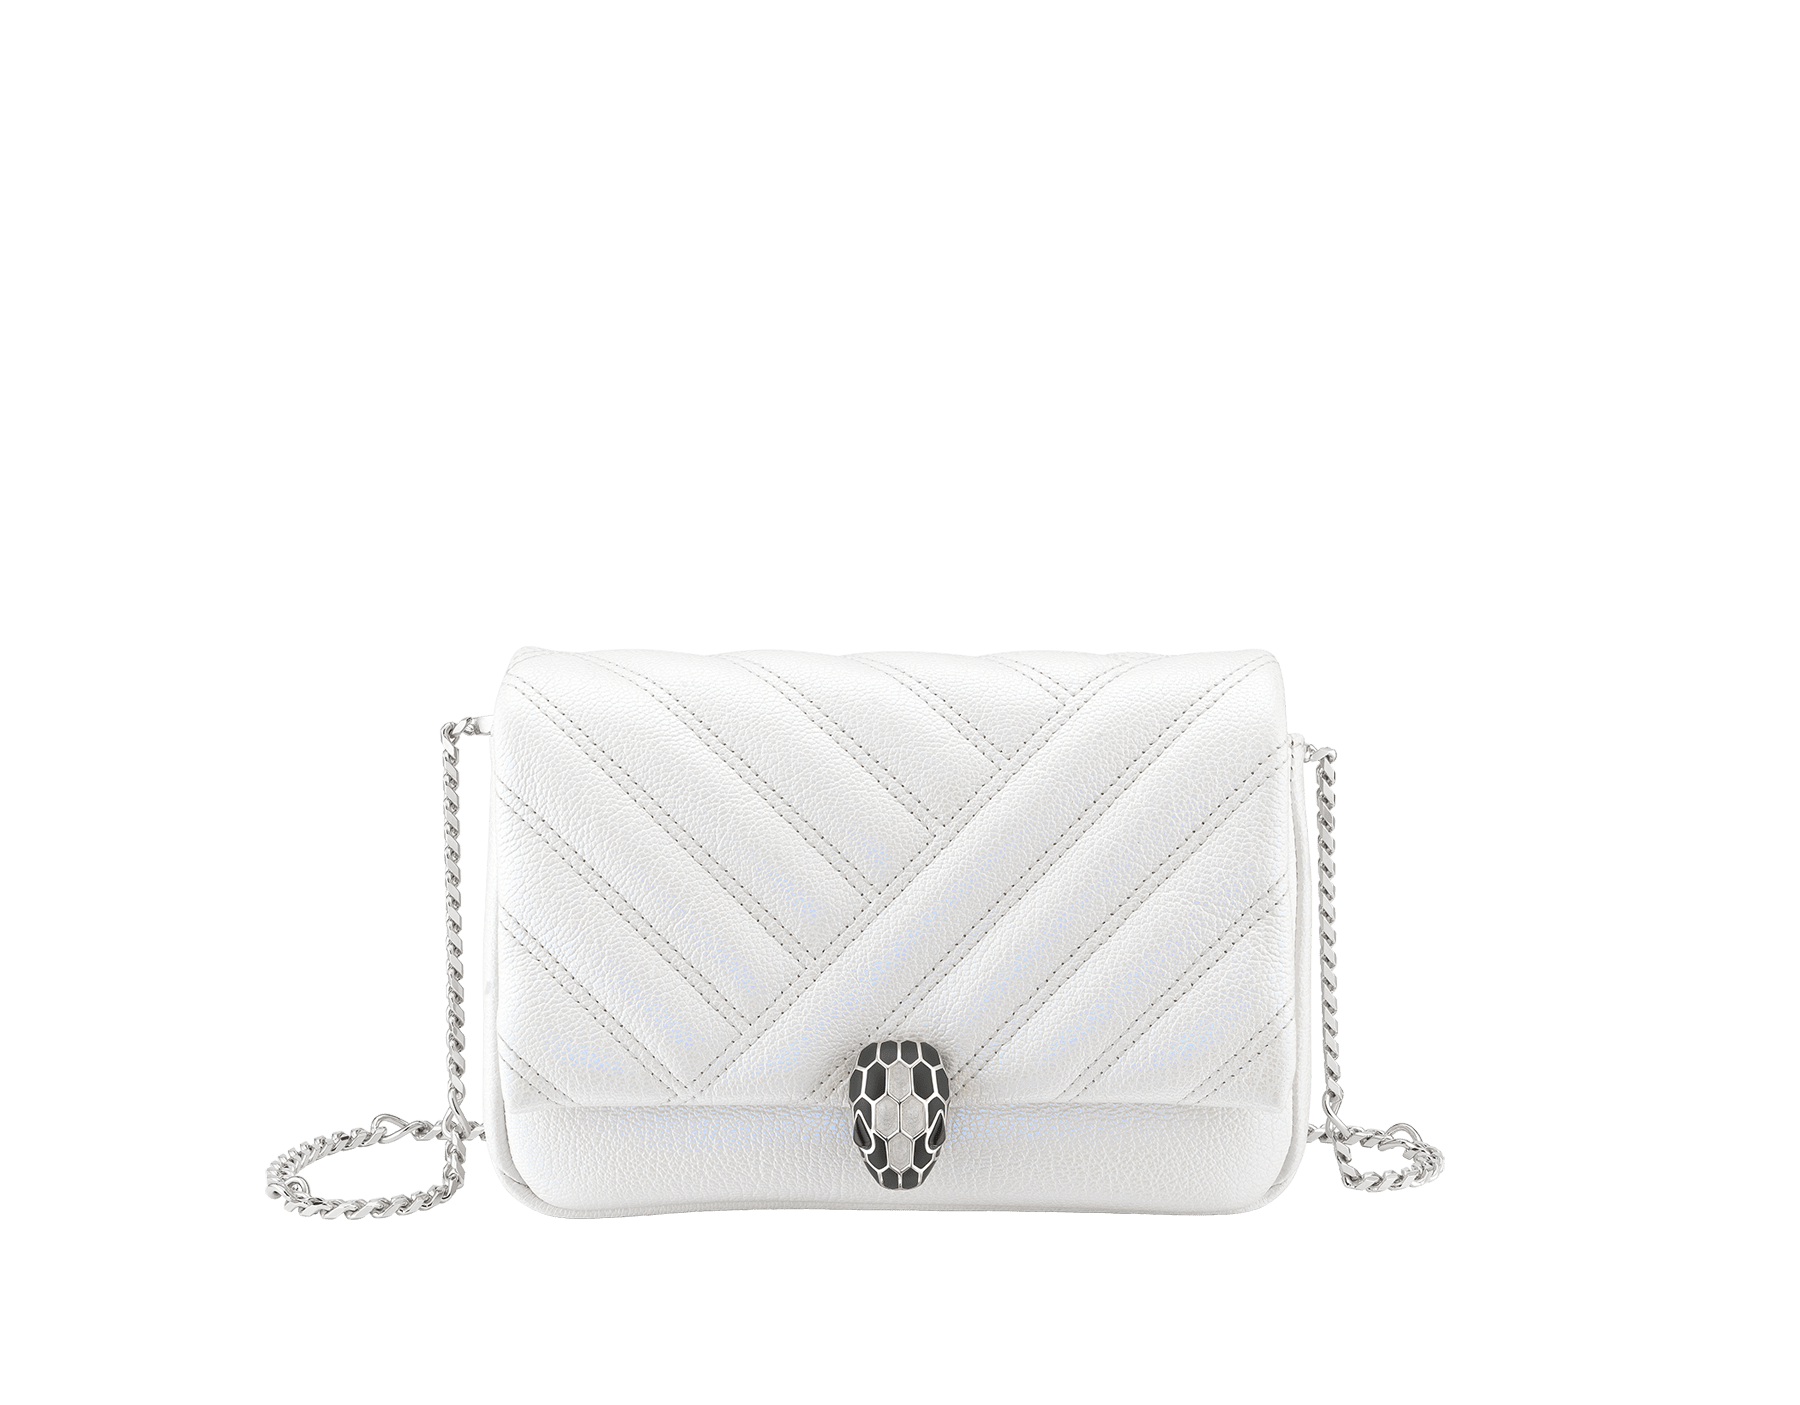 """Serpenti Cabochon"" micro bag in soft matelassé white agate goatskin with a pearled and iridescent effect, with a graphic motif. Brass palladium plated tempting snakehead closure in matte black and shiny white agate enamel and black onyx eyes. 289848 image 1"